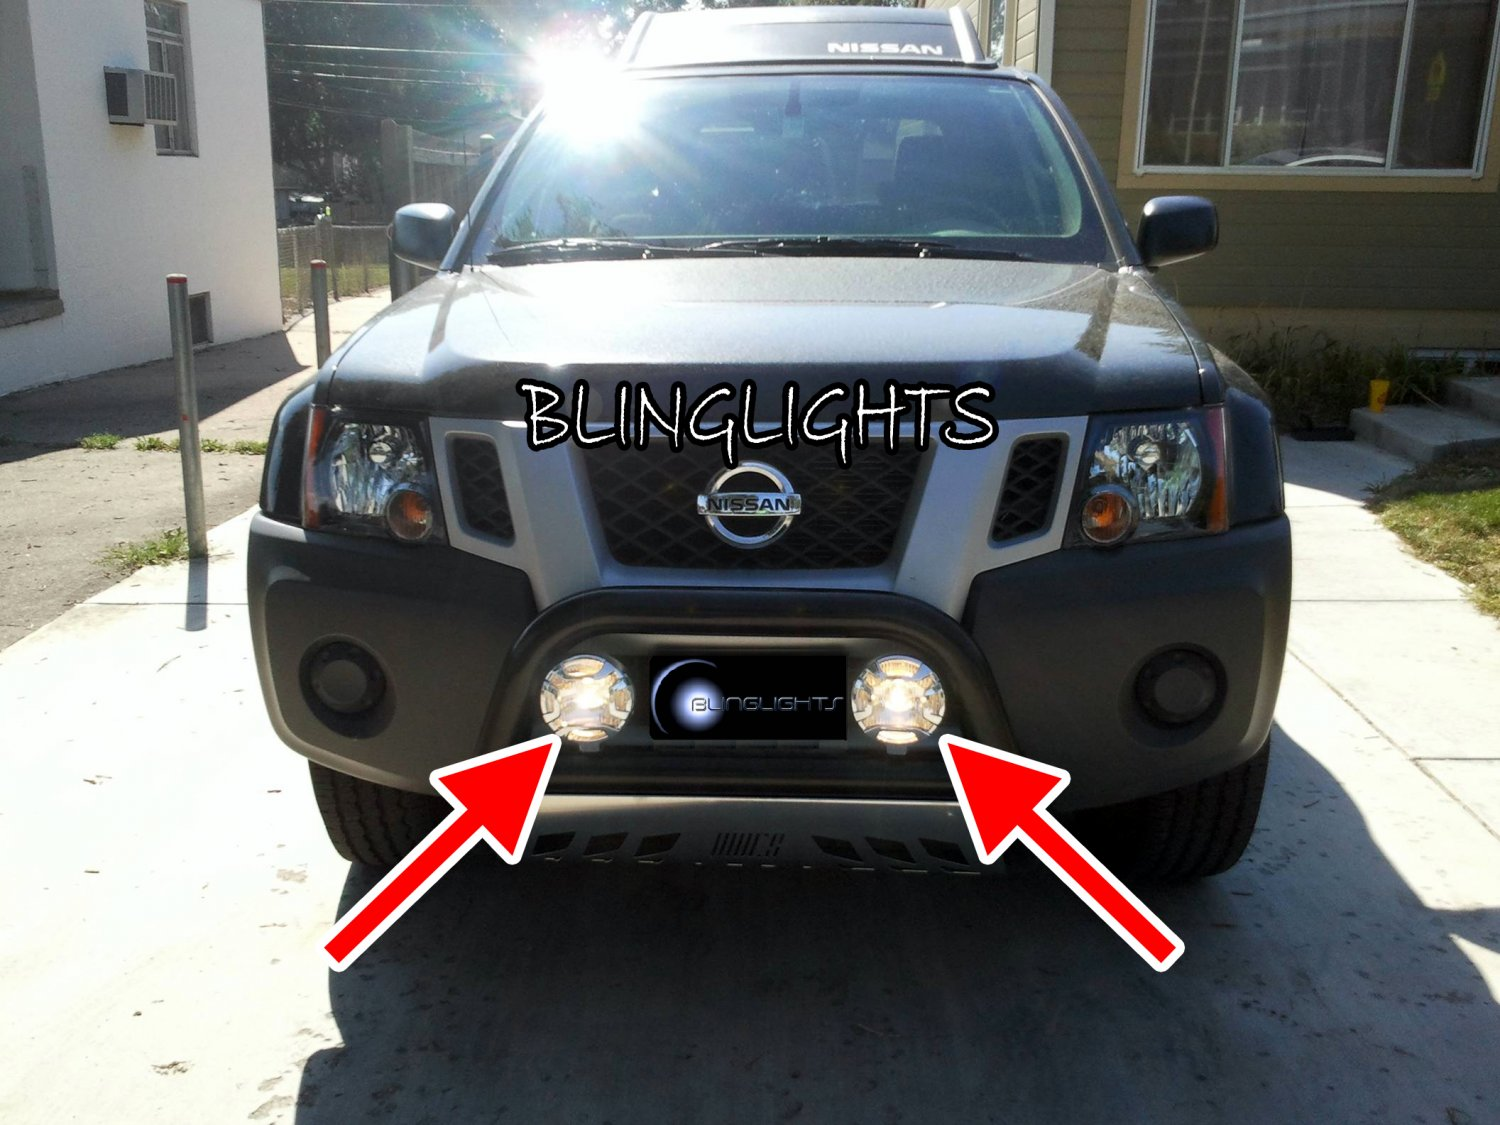 Nissan x trail xtrail off road lamps auxiliary offroad trail nissan x trail xtrail off road lamps auxiliary offroad trail lighting brush bar lights kit aloadofball Choice Image